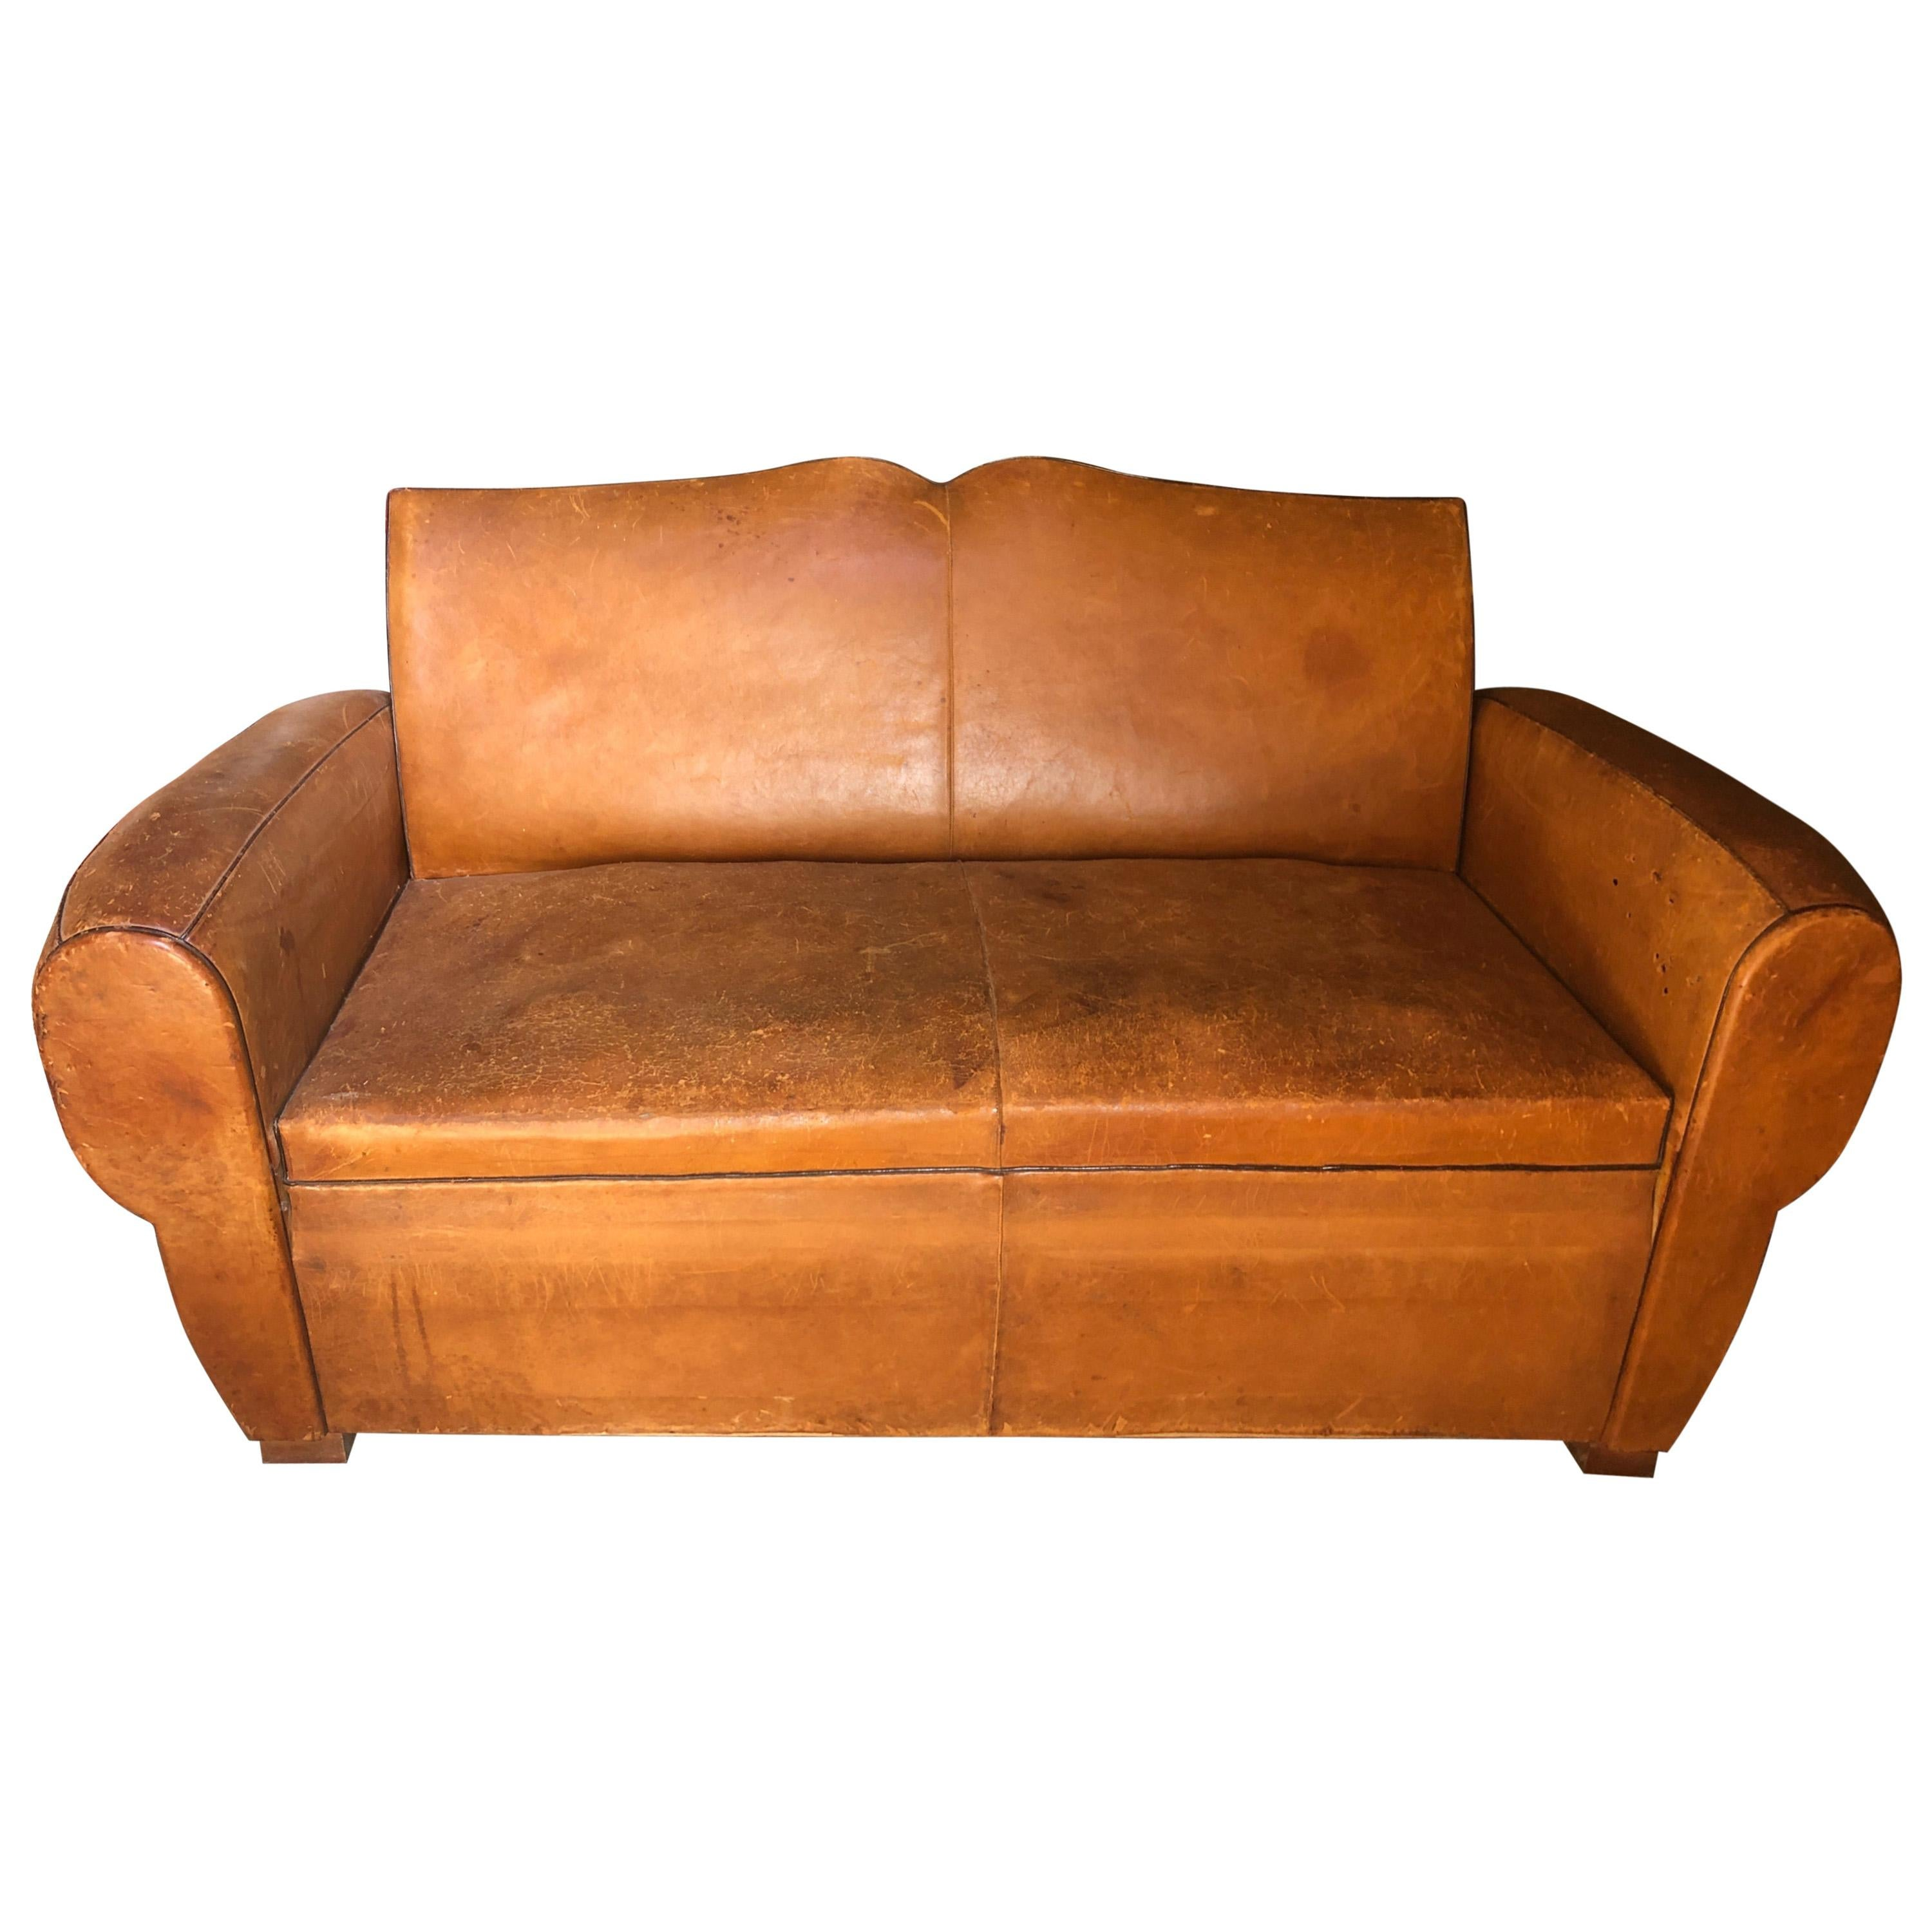 Yummy Distressed Leather Vintage Mustache Back French Sofa